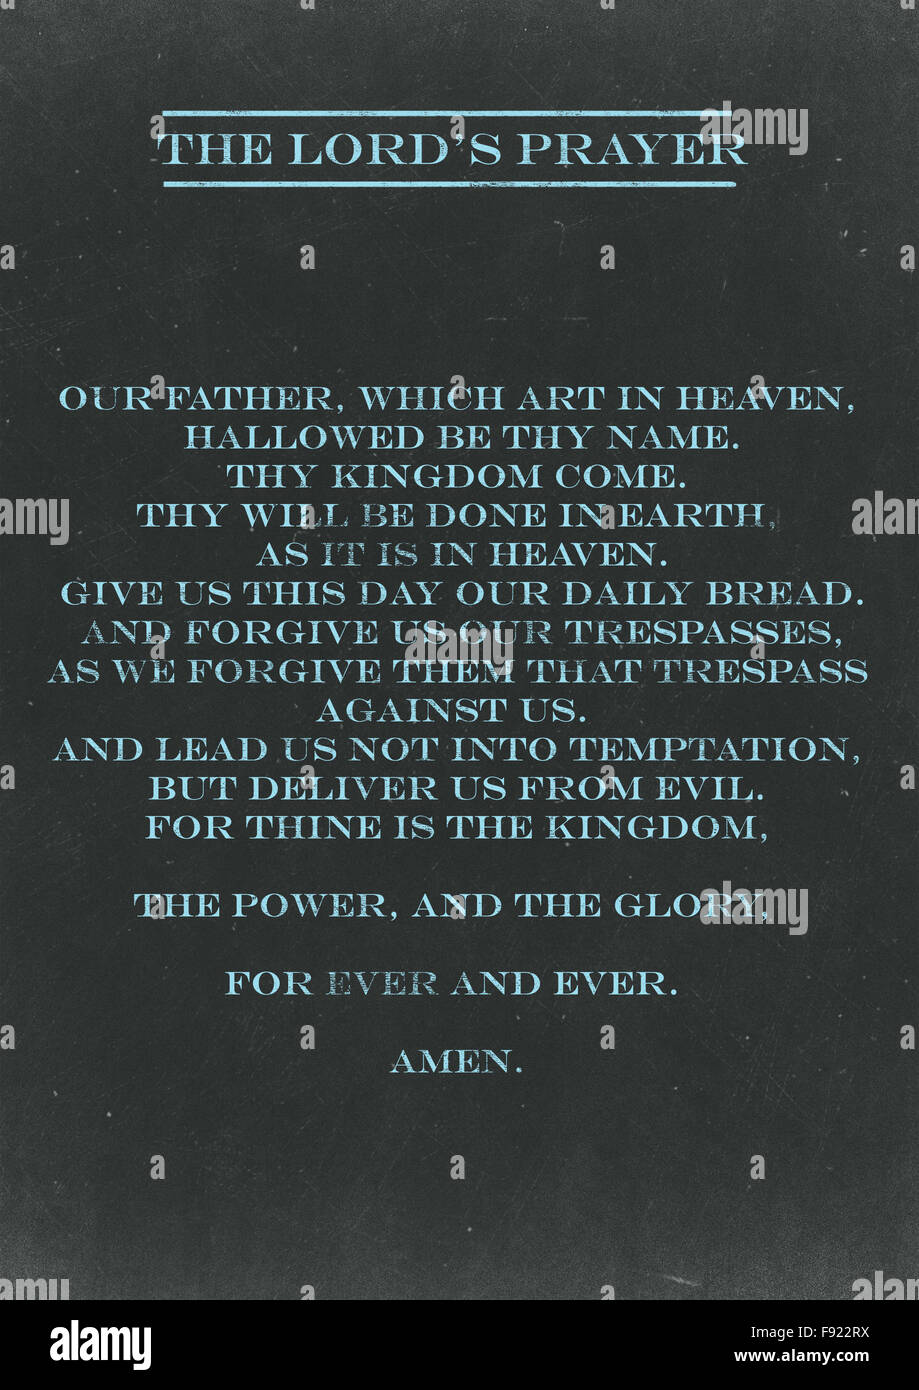 The Lords Prayer hand written on a Chalkboard - Stock Image